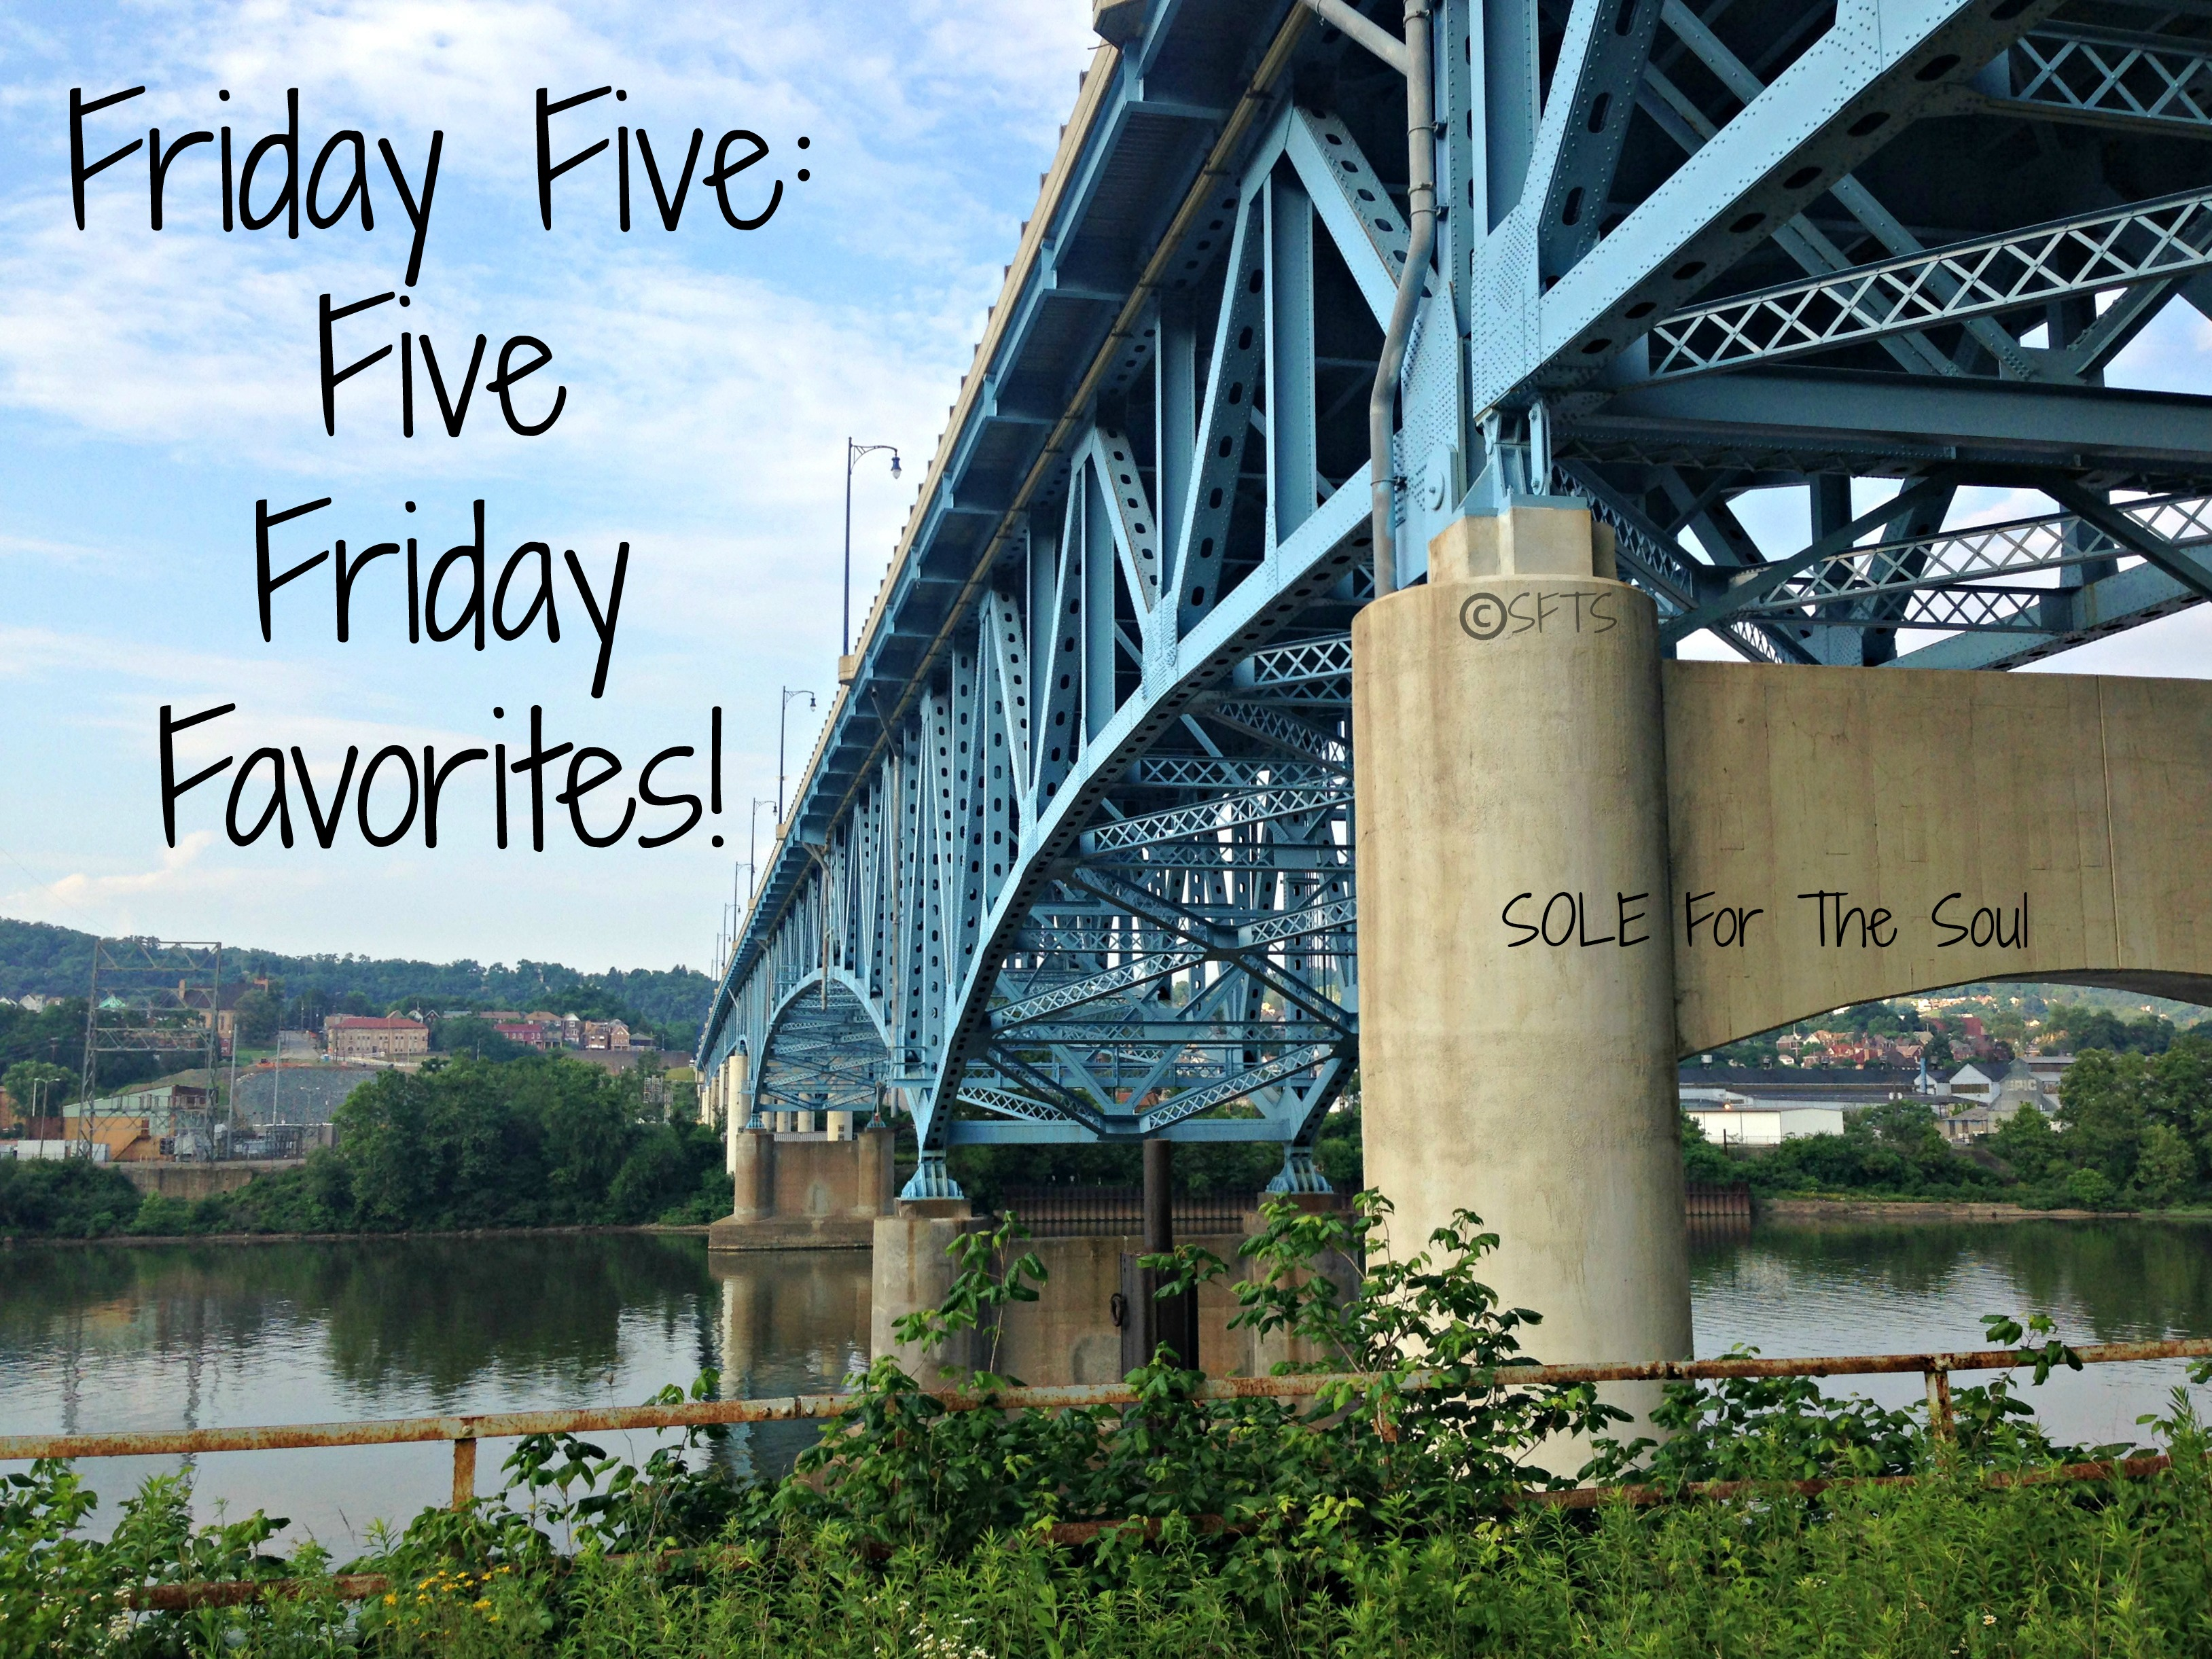 Friday five five friday favorites sole for the soul